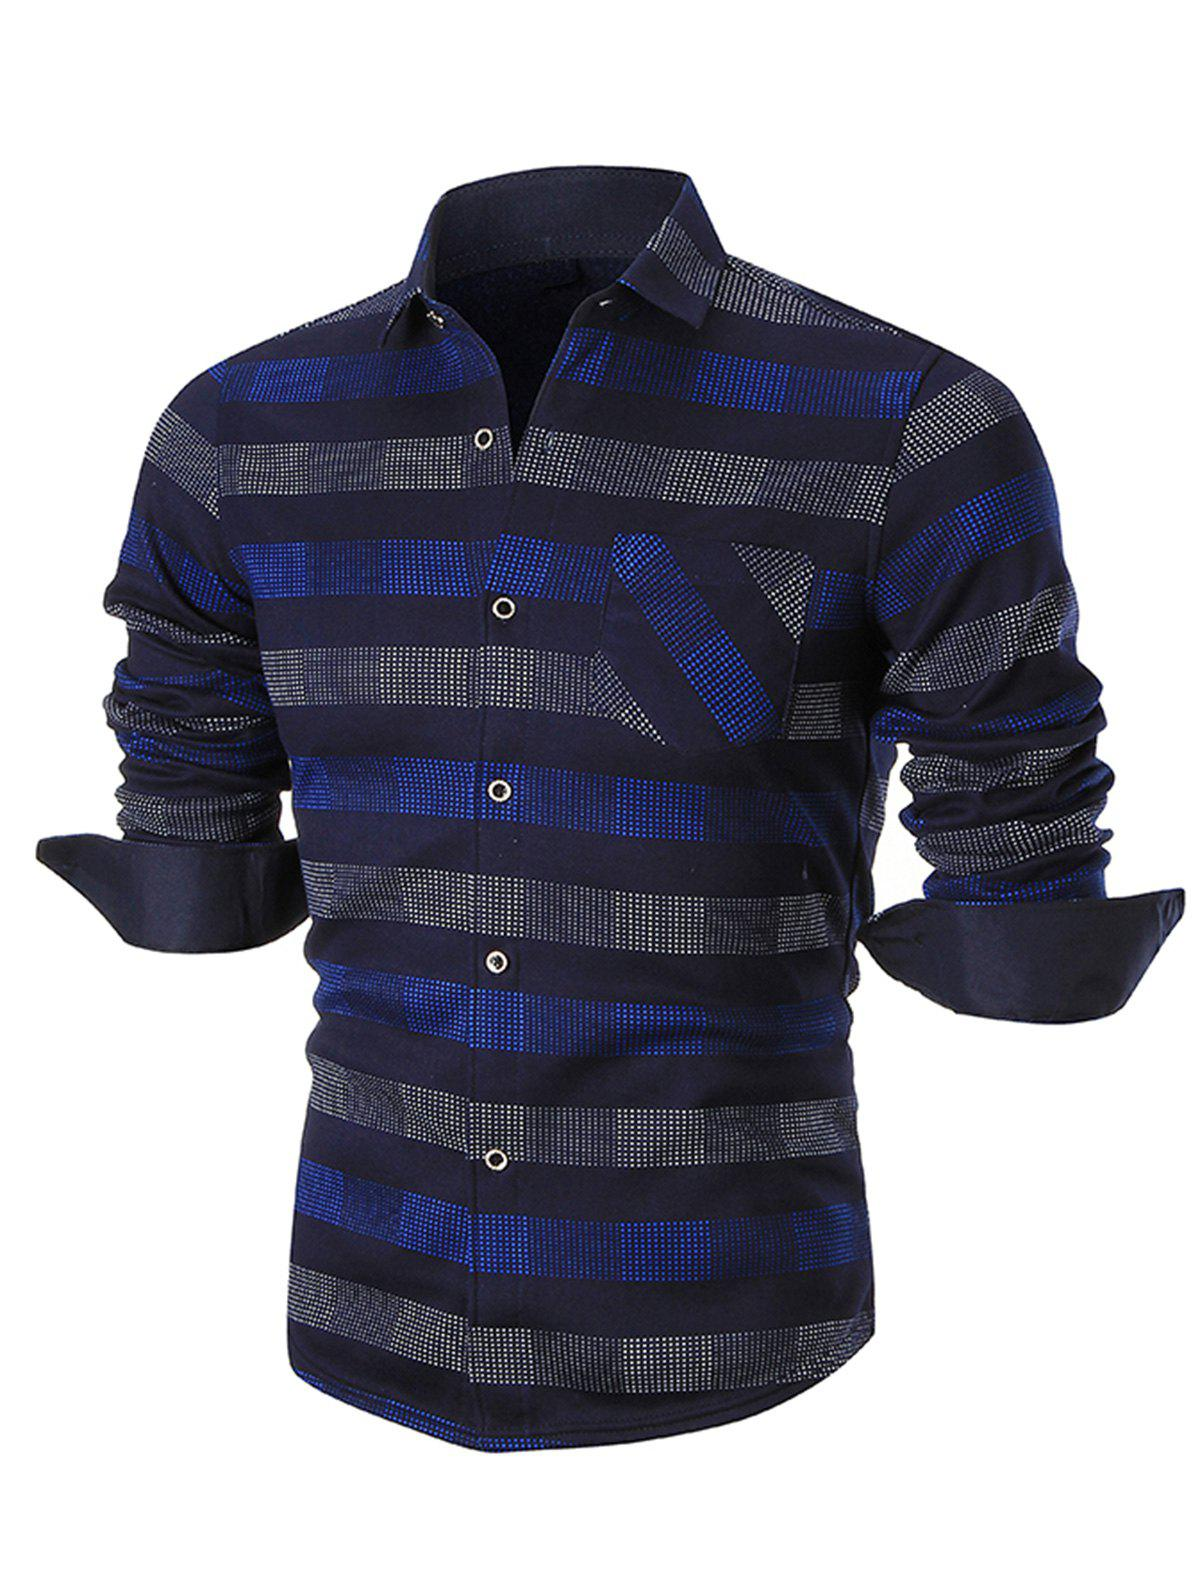 Turn-down Collar Color Block Plaid Shirt картридж profiline pl 106r01486 1487 для xerox wc 3210 3210n 3220dn 4100 стр черный